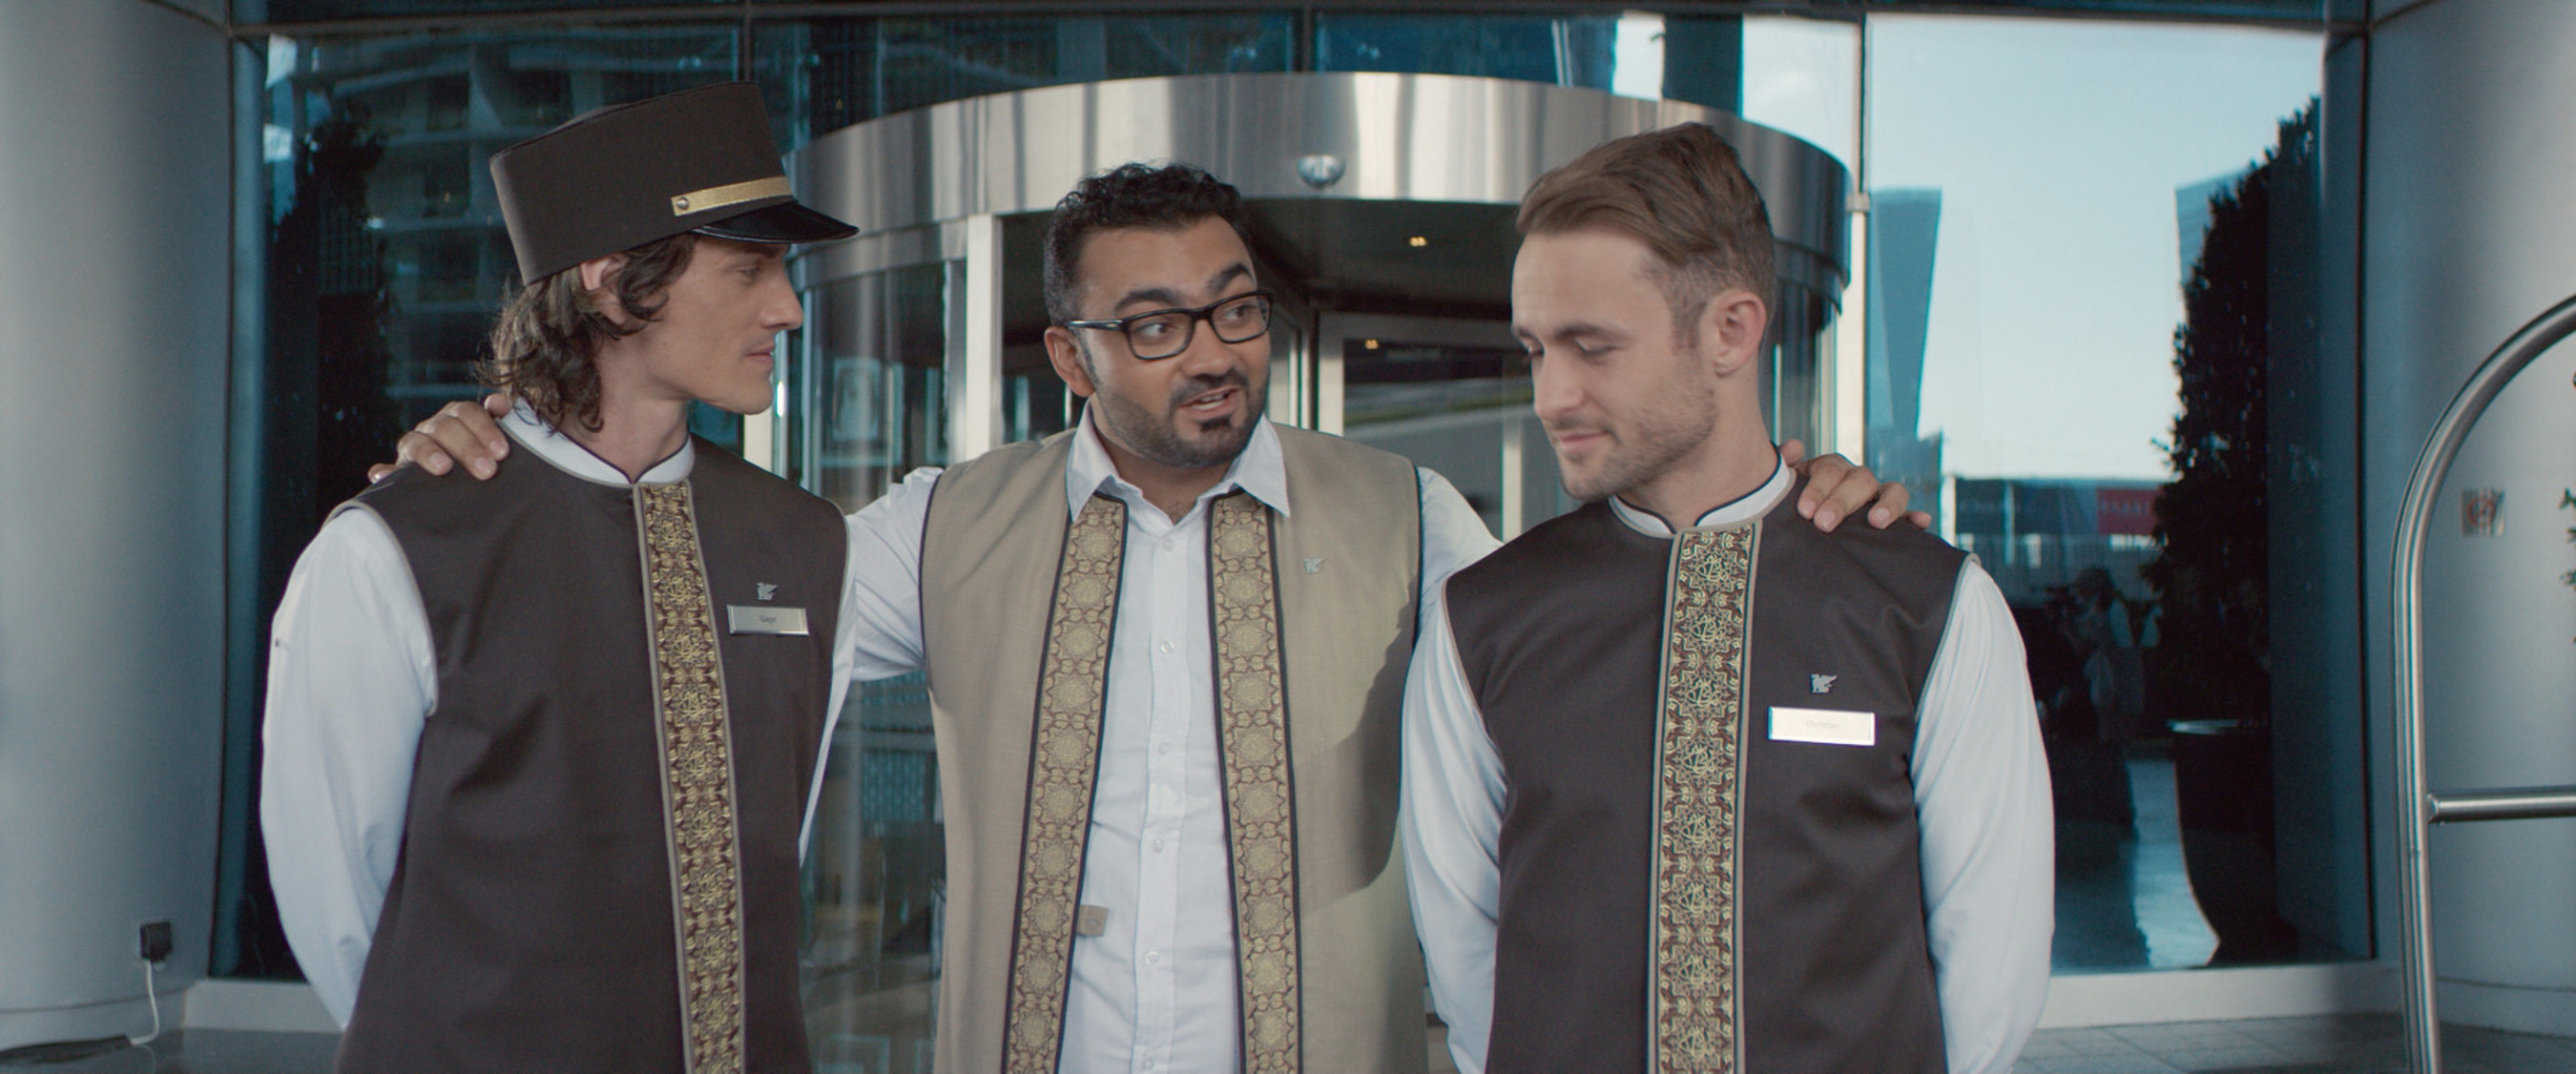 JW Marriott Hotels & Resorts And Marriott Content Studio Release Trailer For Newest Short Film 'Two Bellmen Two'